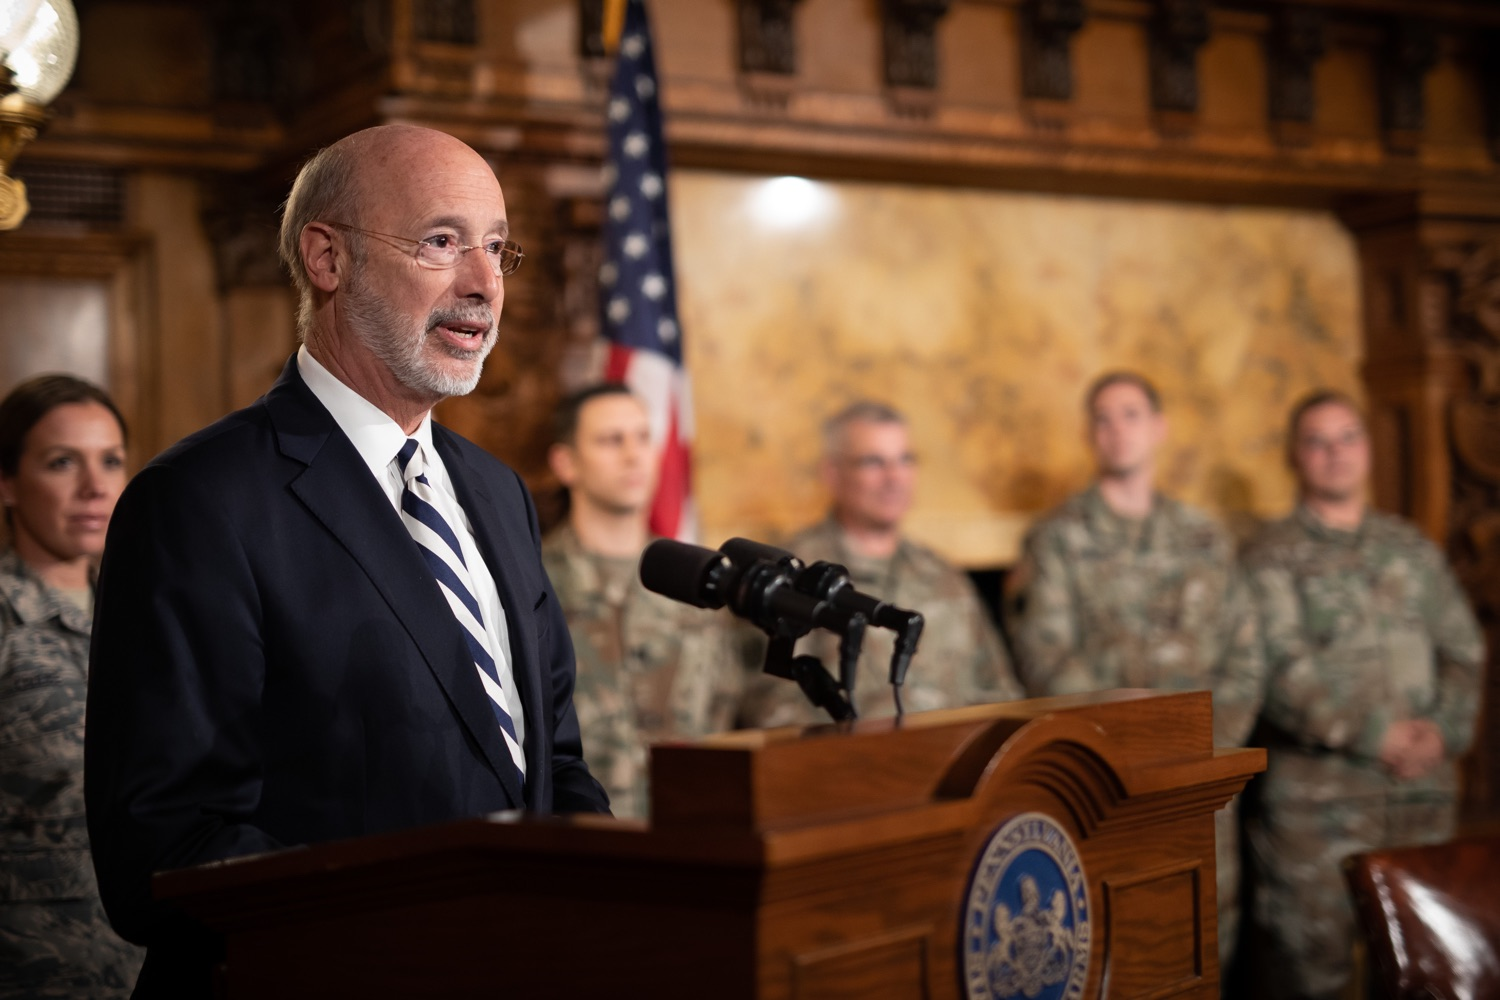 """<a href=""""http://filesource.abacast.com/commonwealthofpa/photo/17563_gov_giBill_dz_008.jpg"""" target=""""_blank"""">⇣Download Photo<br></a>Governor Tom Wolf speaking at the announcement. Governor Tom Wolf, joined by Pennsylvanias adjutant general and head of the Department of Military and Veterans Affairs Maj. Gen. Anthony Carelli, legislators and PA National Guard members and their families, encouraged PA National Guard members to take advantage of the new Military Family Education Program, or PA GI bill, now open for enrollment. Harrisburg, PA Monday, November 4 2019"""